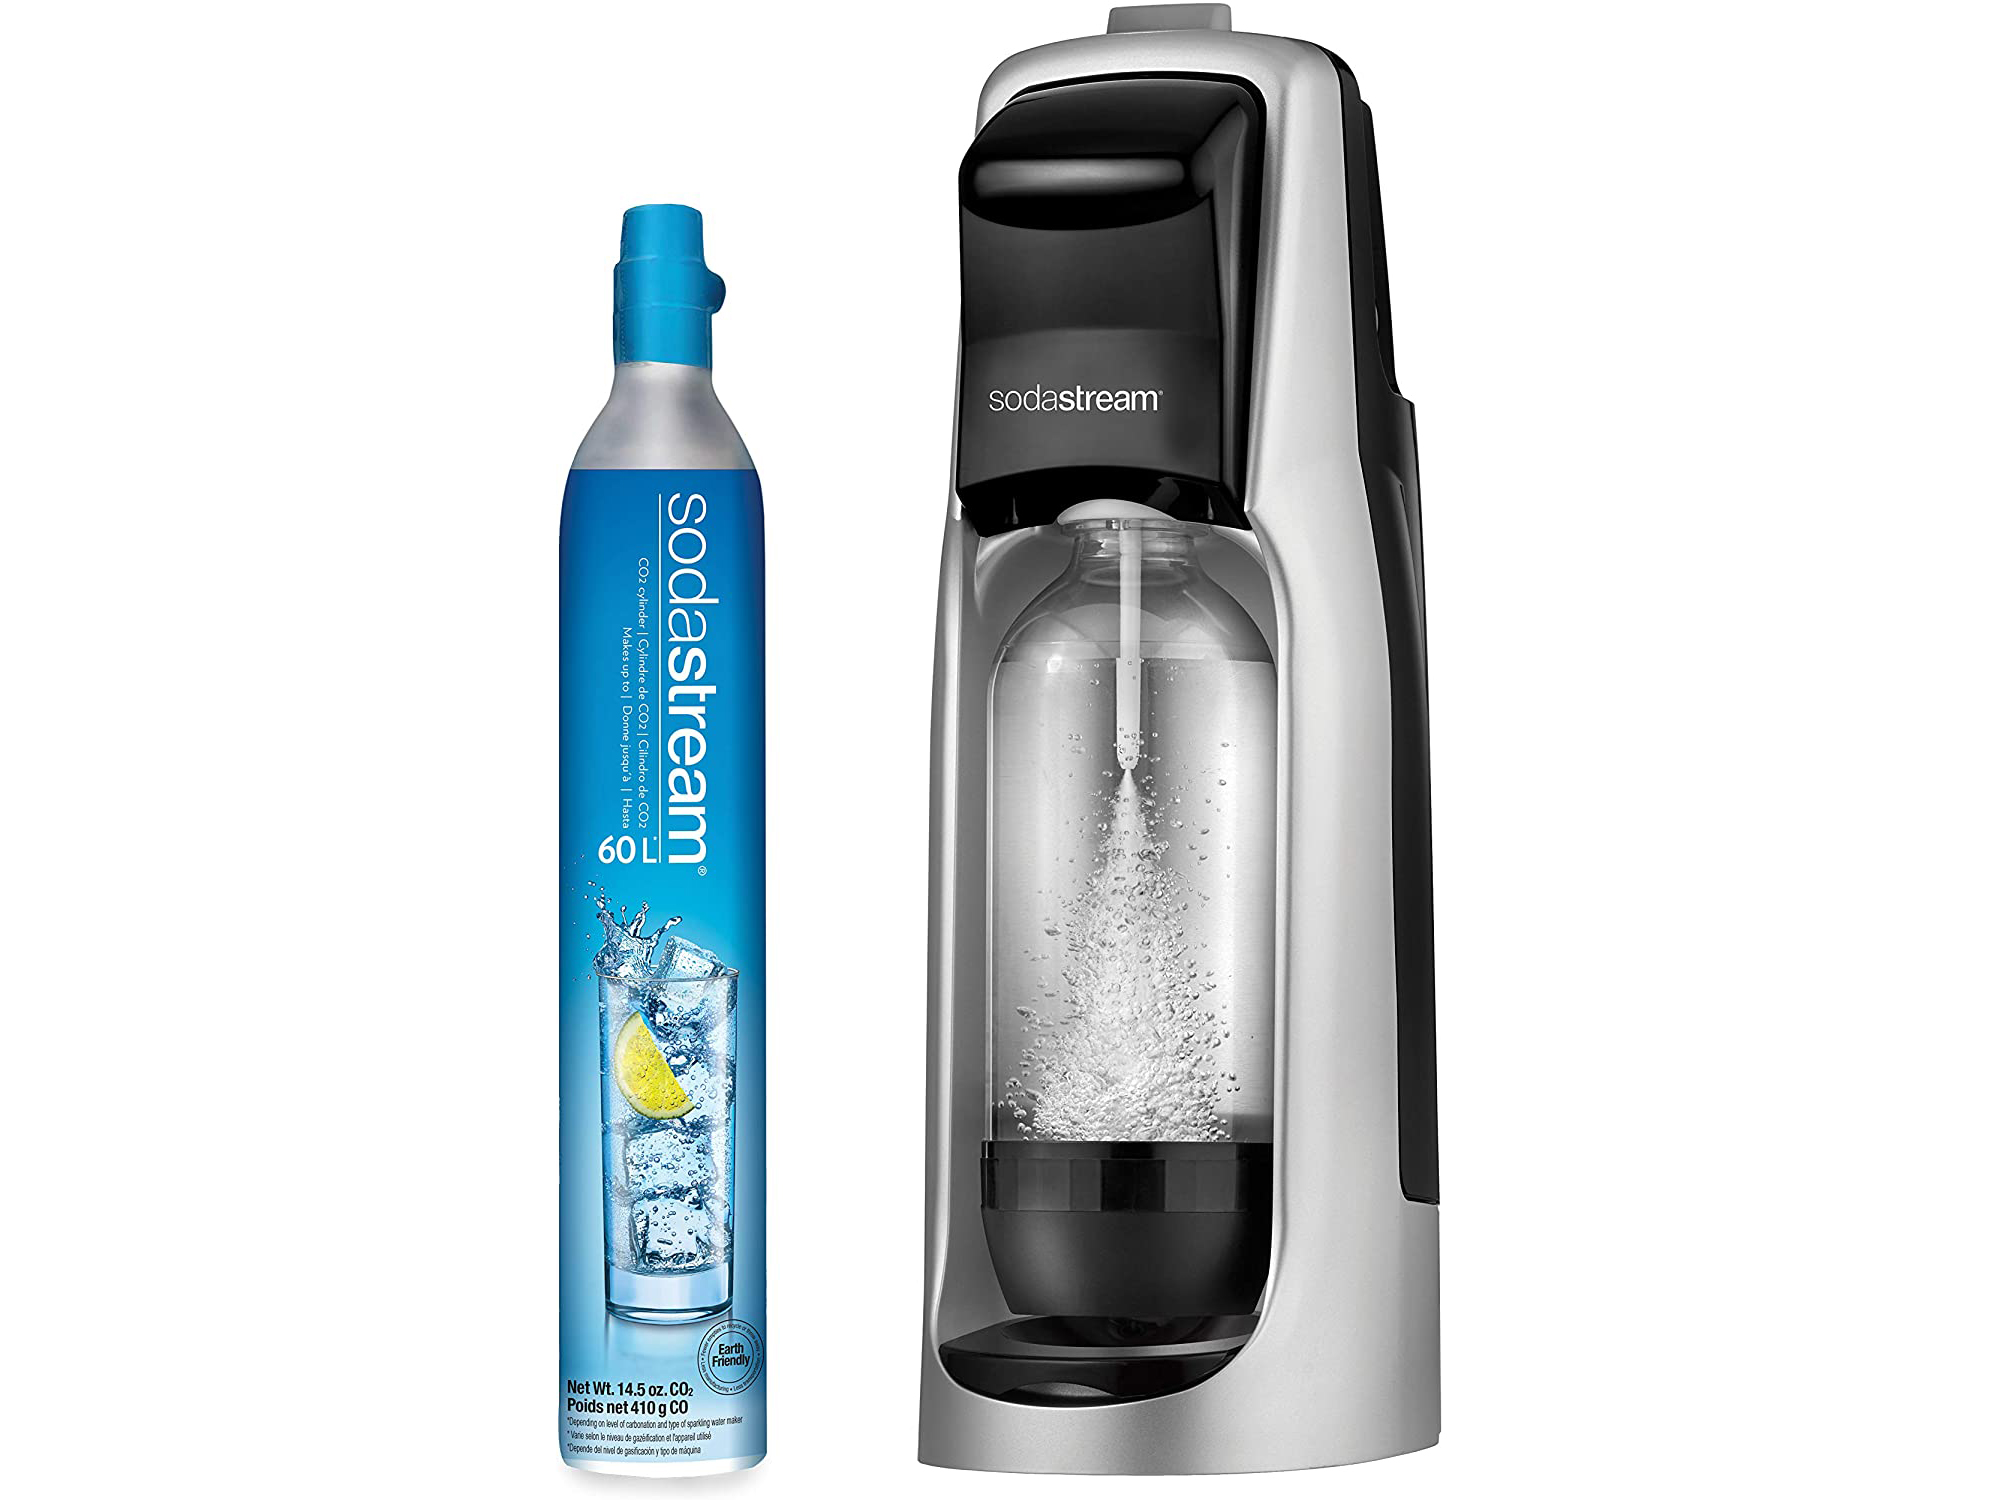 Sodastream and bottle